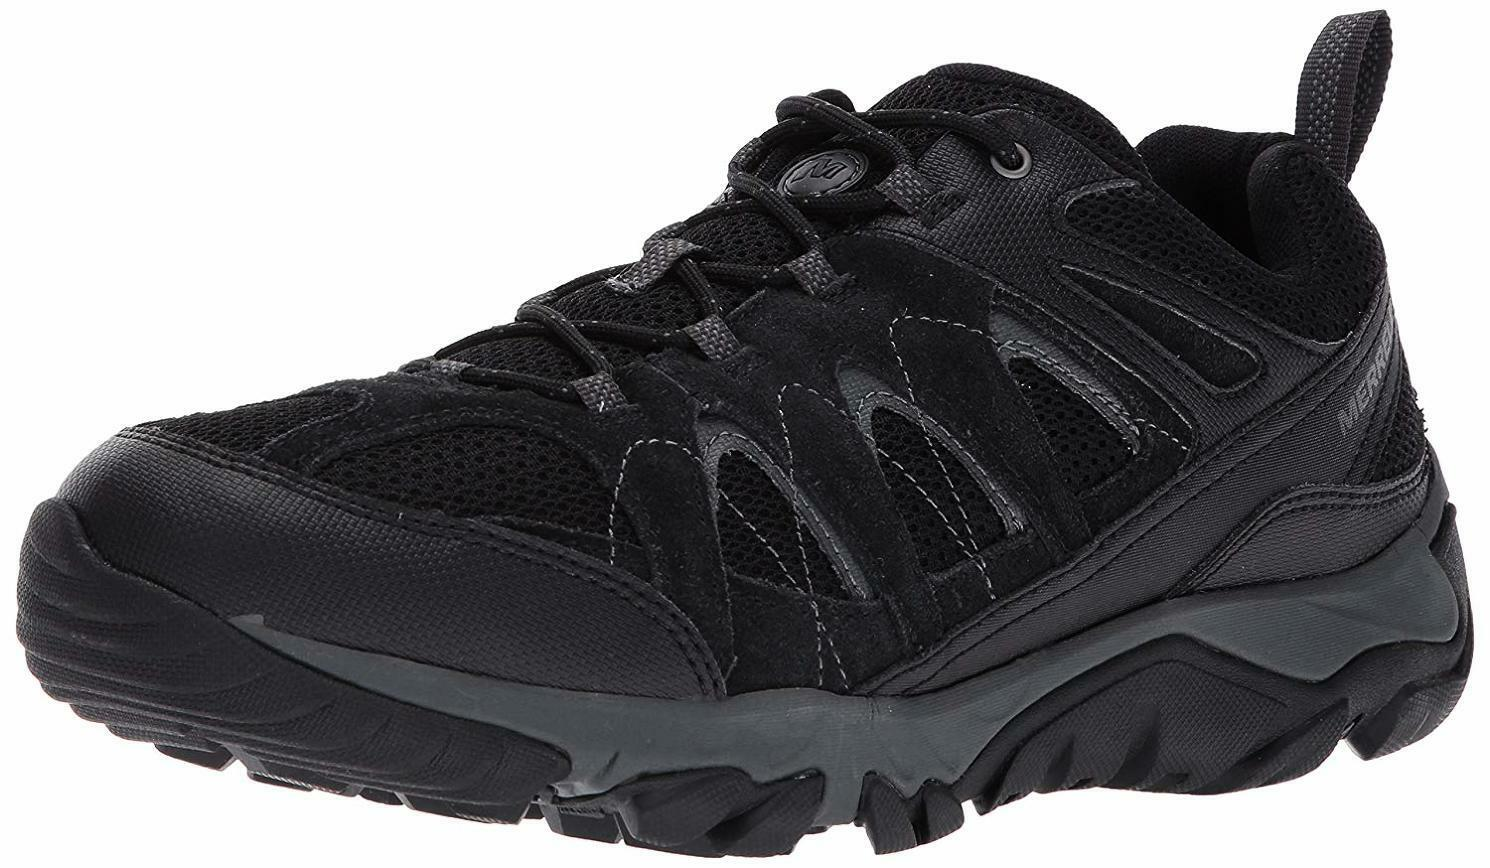 Merrell Men's Outmost Ventilator - Choose SZ color